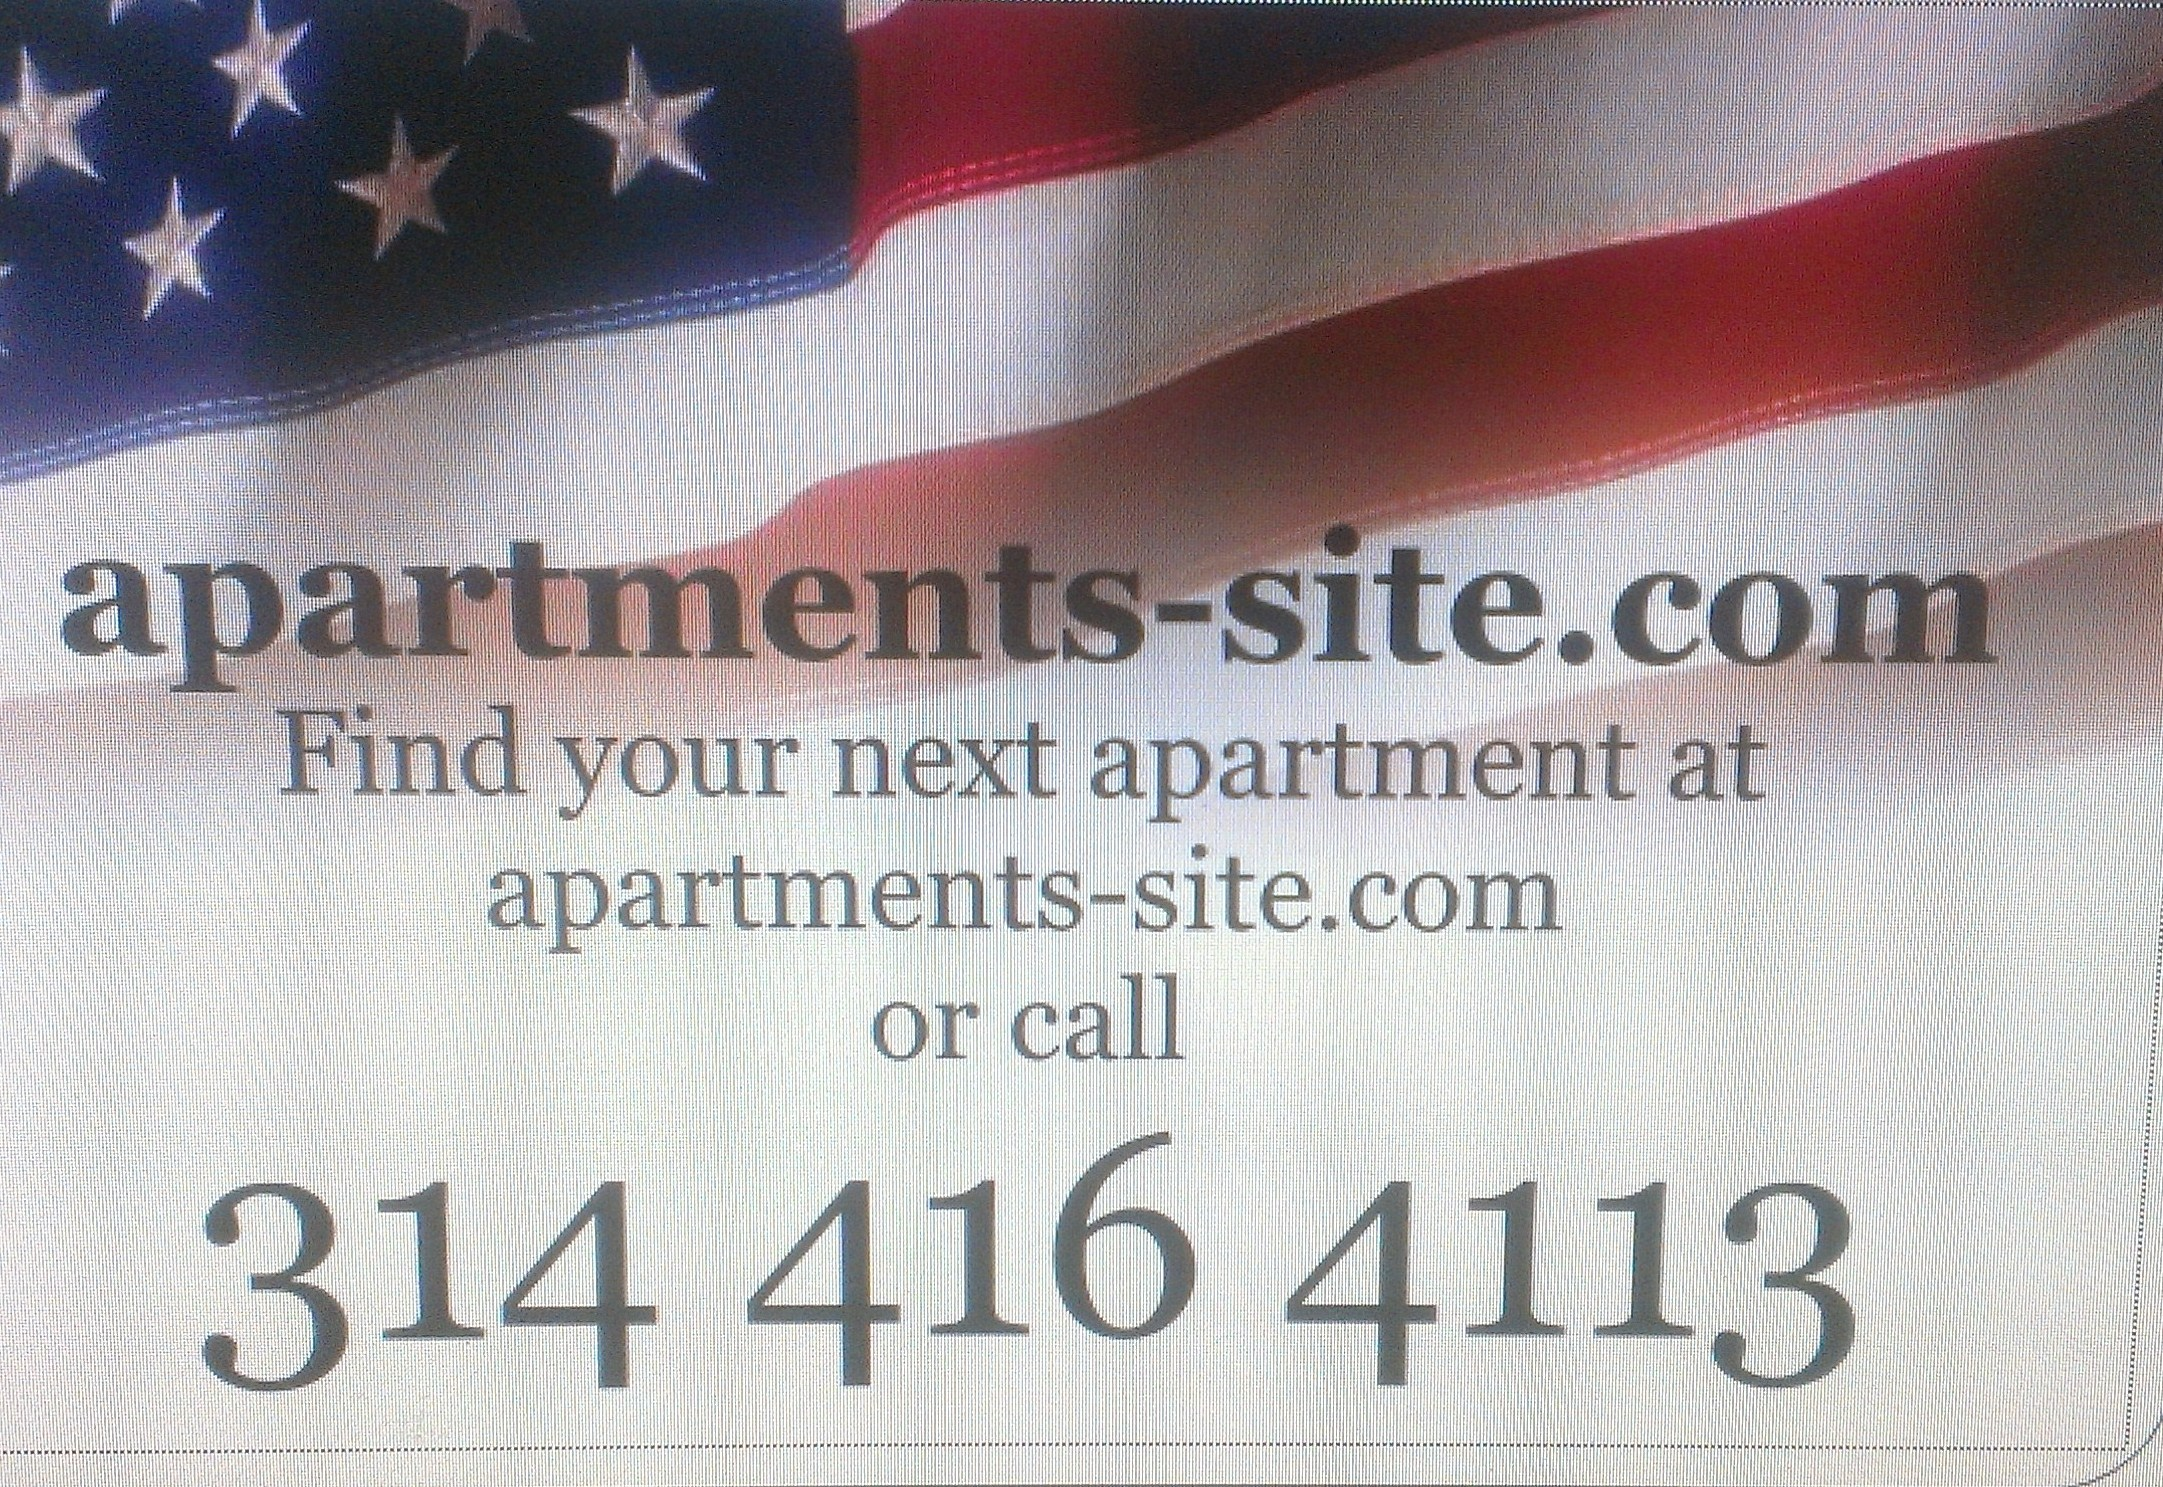 apartments-site.com logo